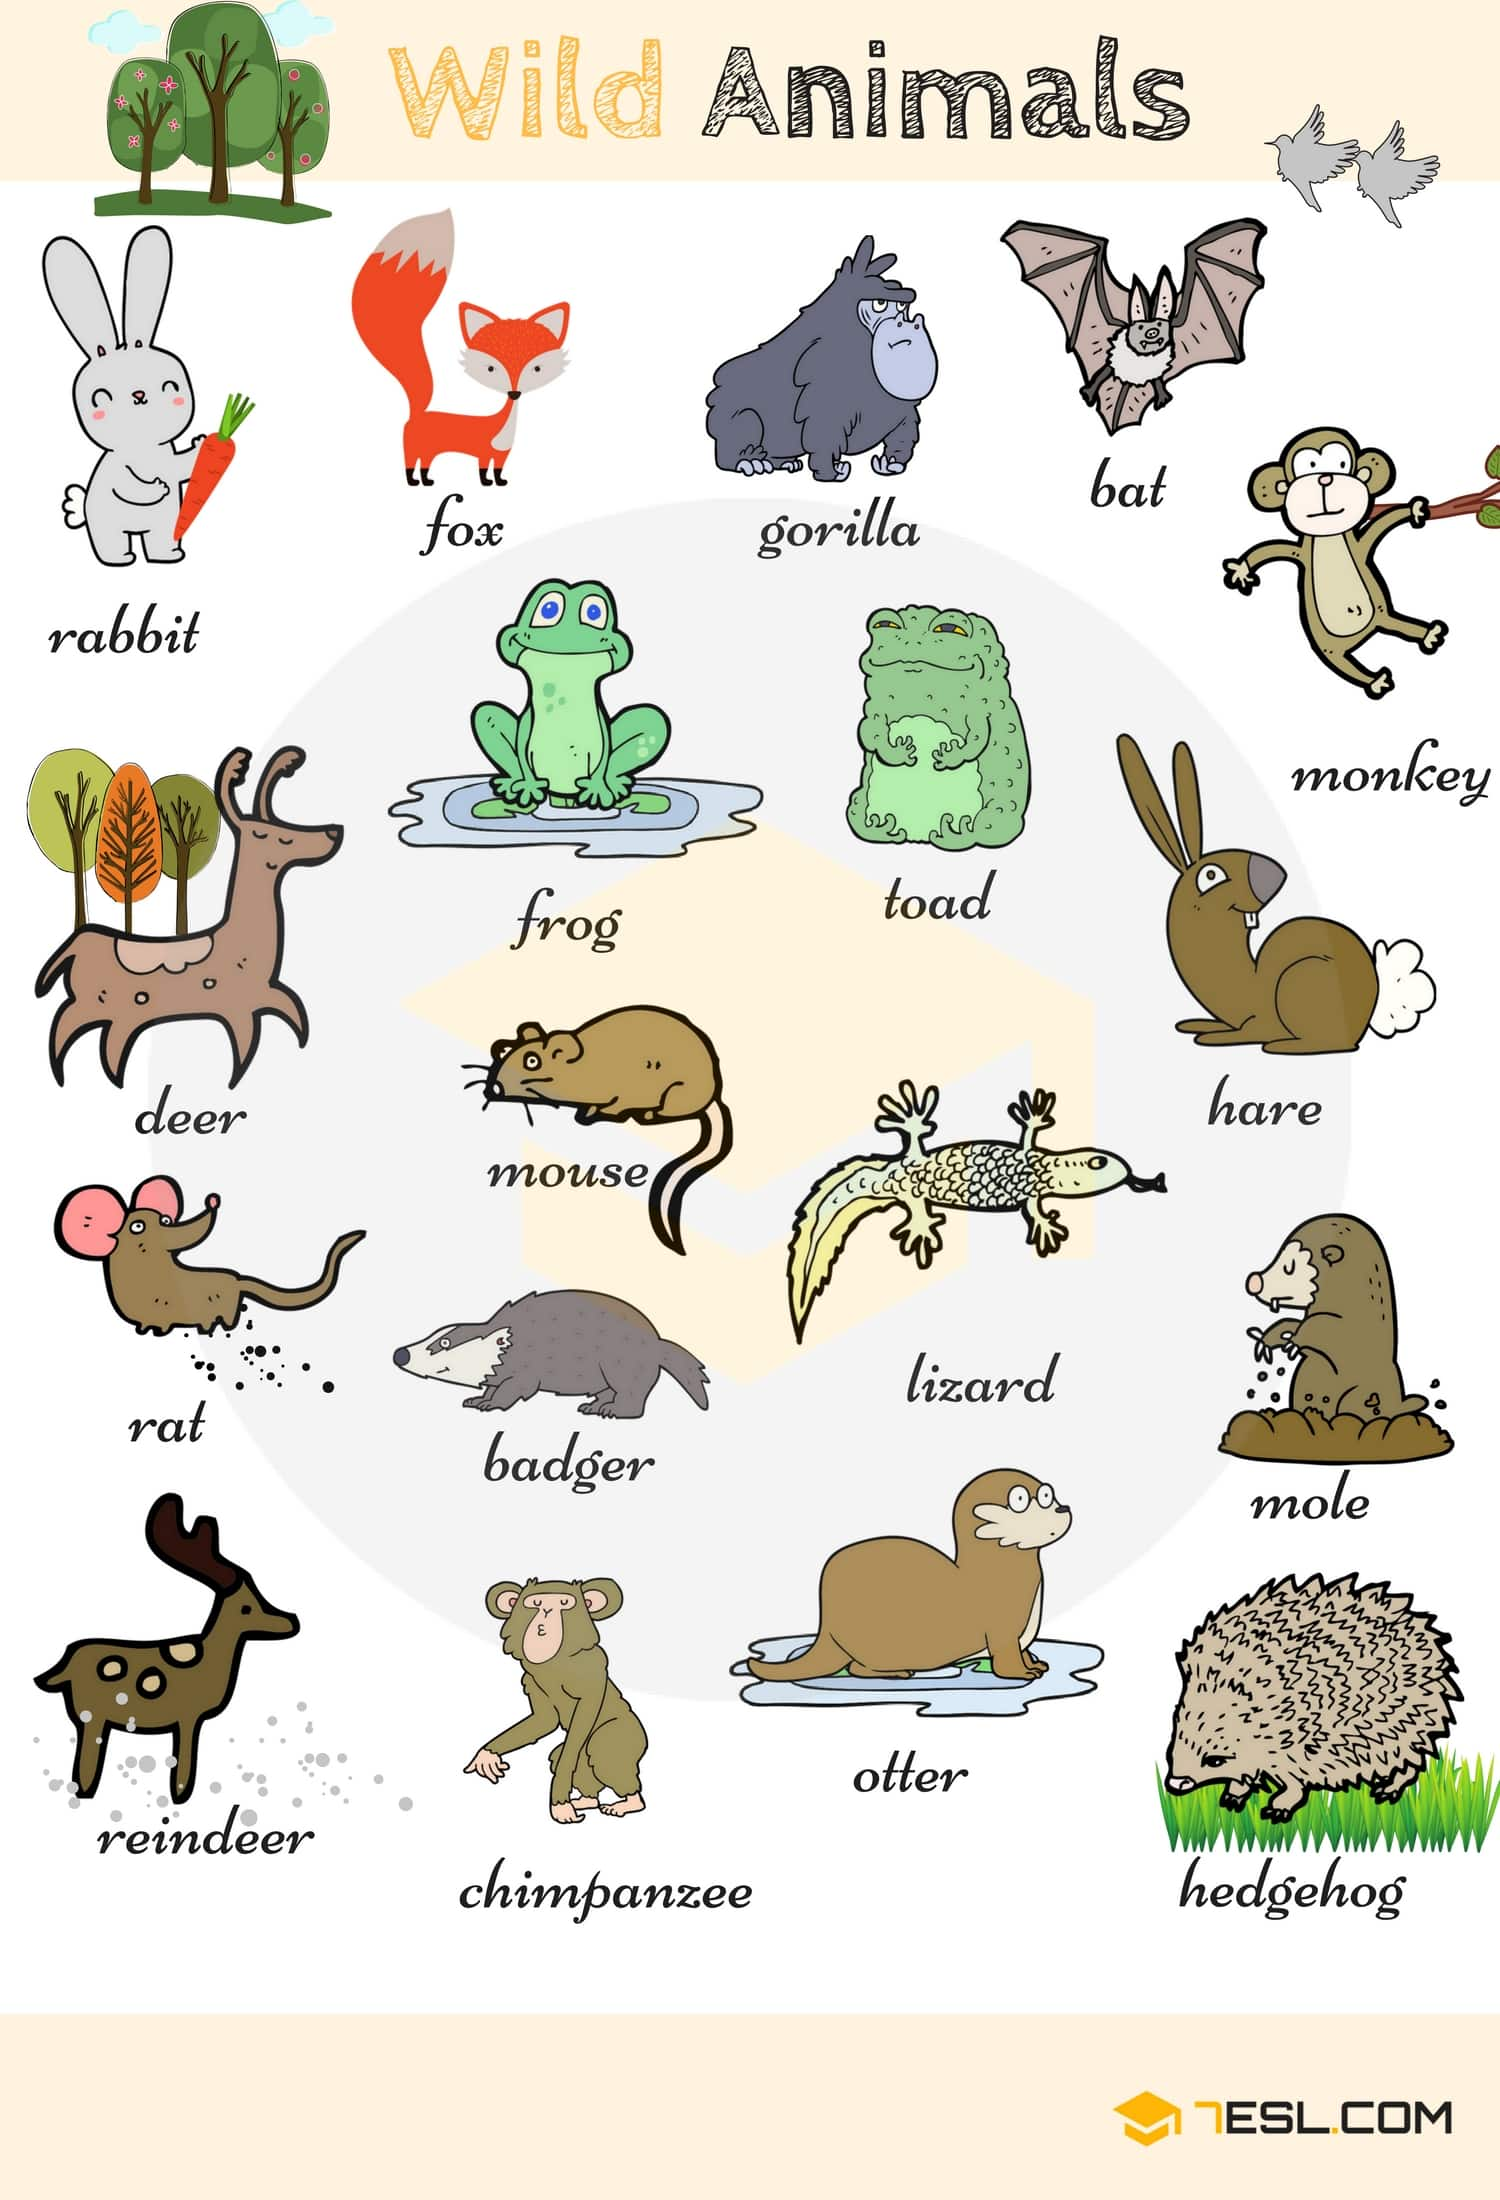 Wild Animal Vocabulary In English